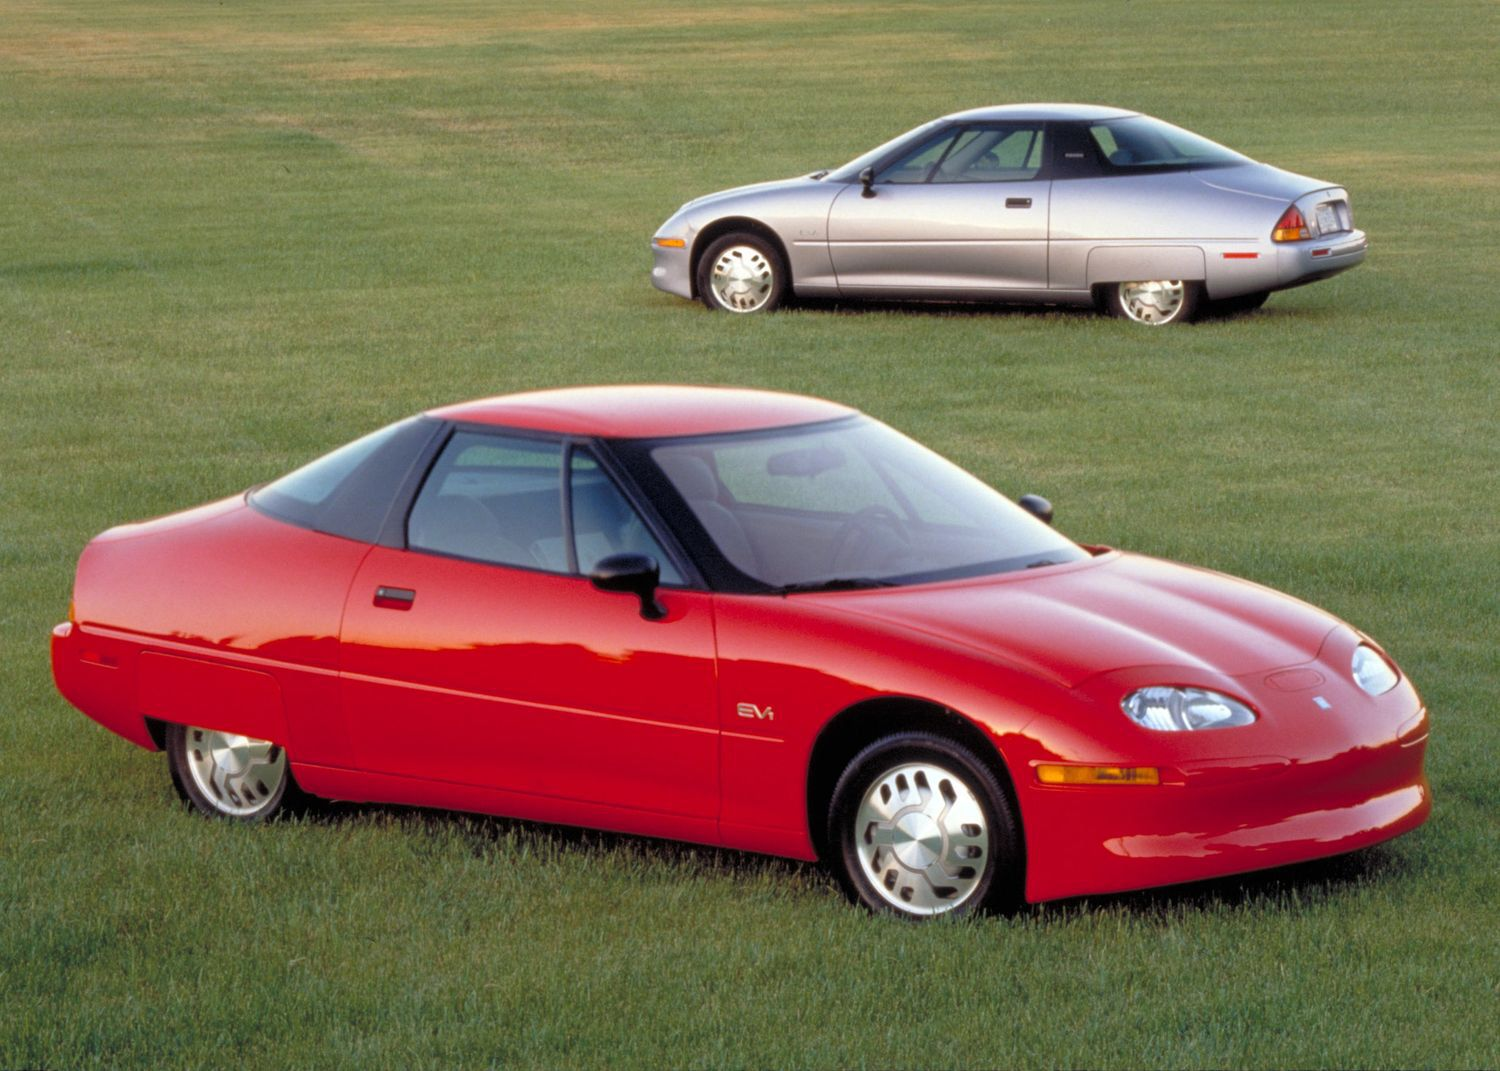 Chevrolet EV1 first electric car from GM 1996 Coche